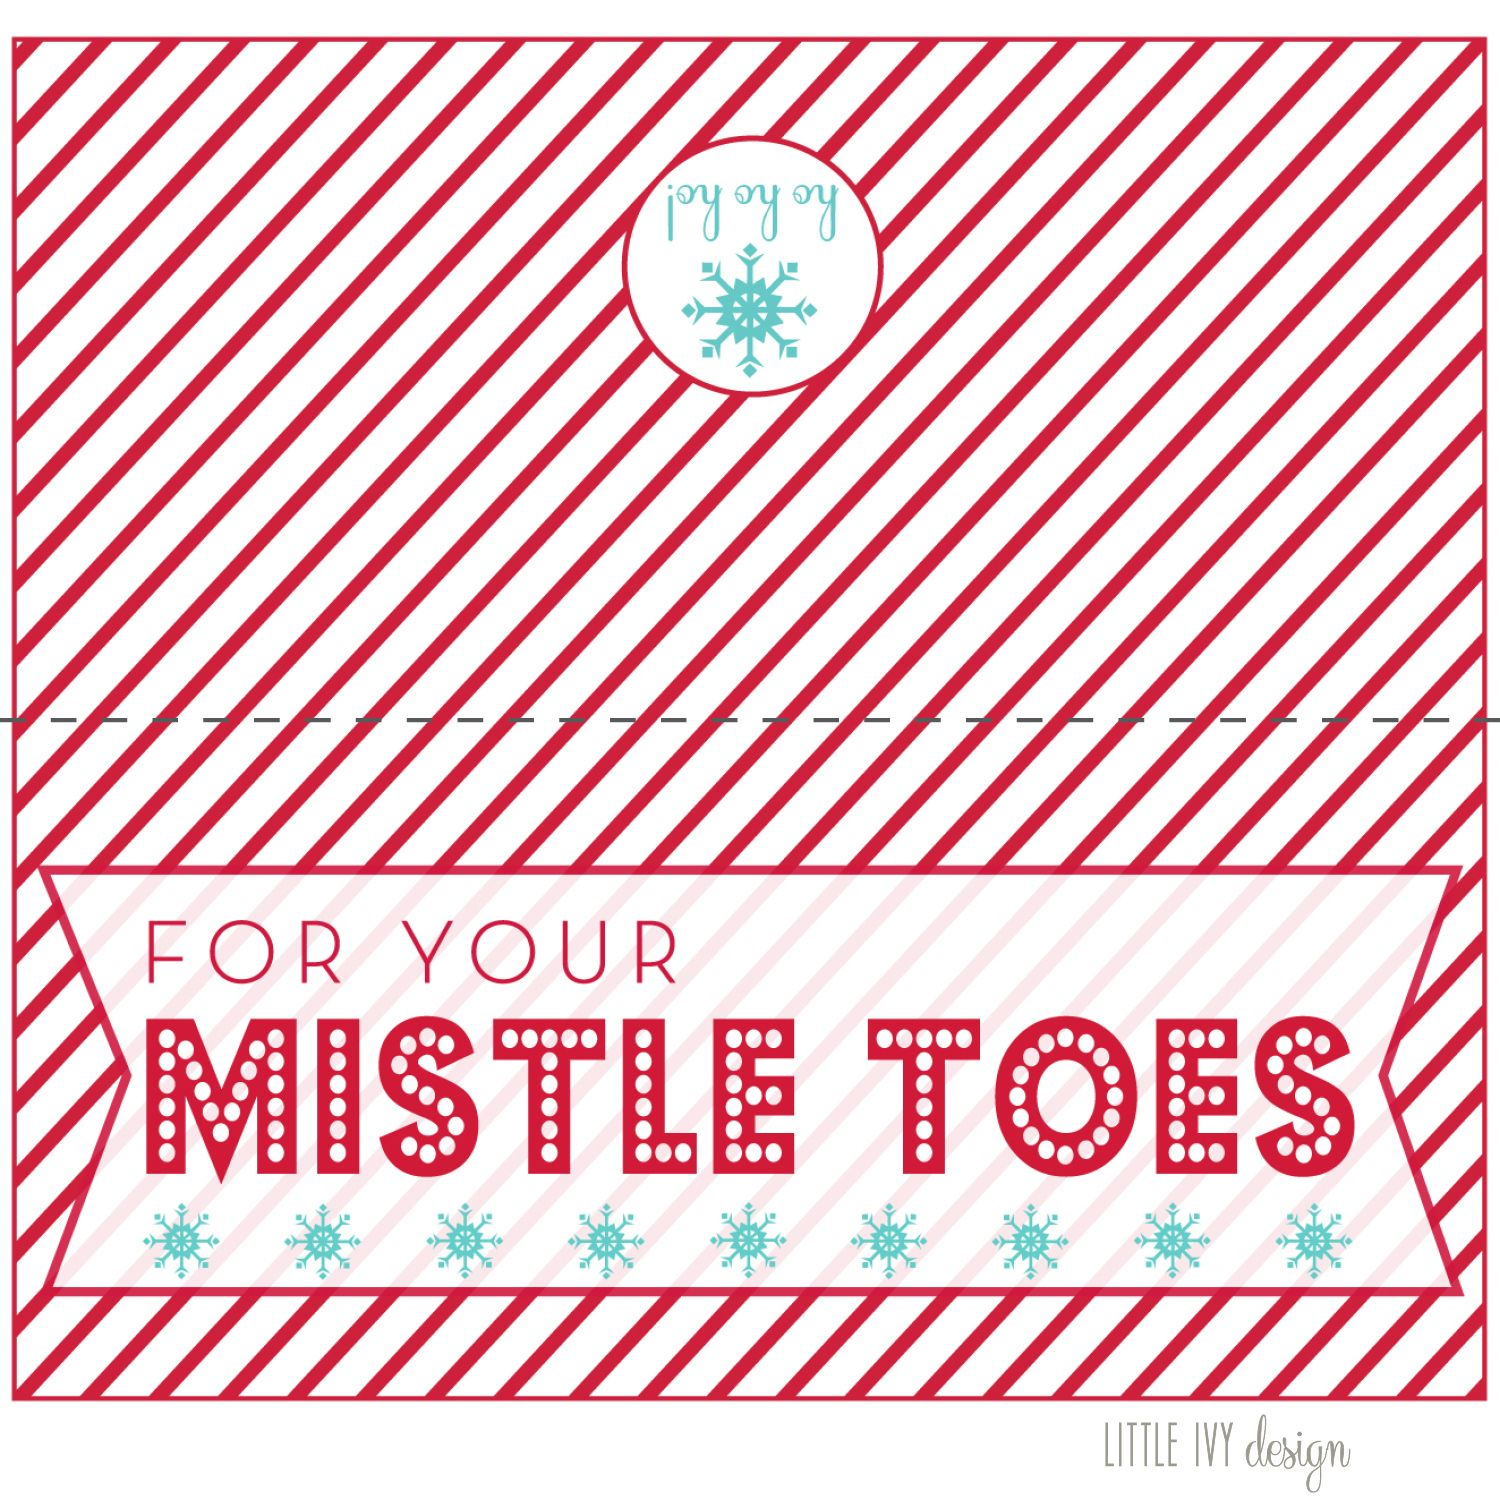 picture about For Your Mistletoes Printable identified as For Your Mistle Ft + Cost-free Printable Ivy inside of the Bay